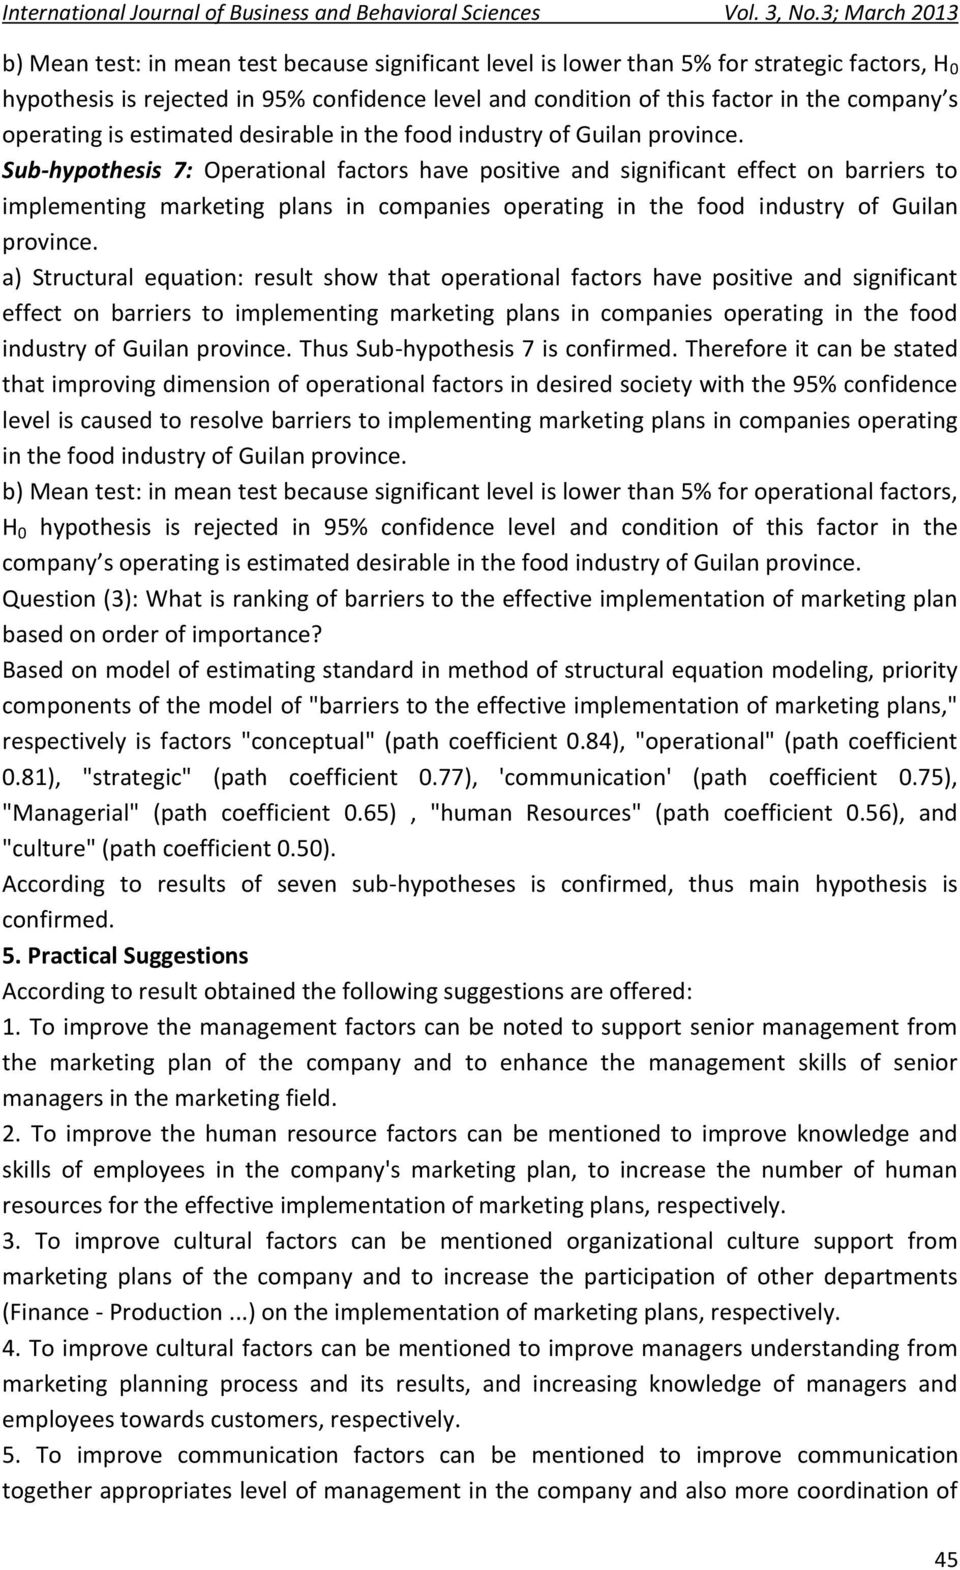 industry of Guilan a) Structural equation: result show that operational have positive and significant effect on barriers to implementing marketing plans in companies operating in the food industry of